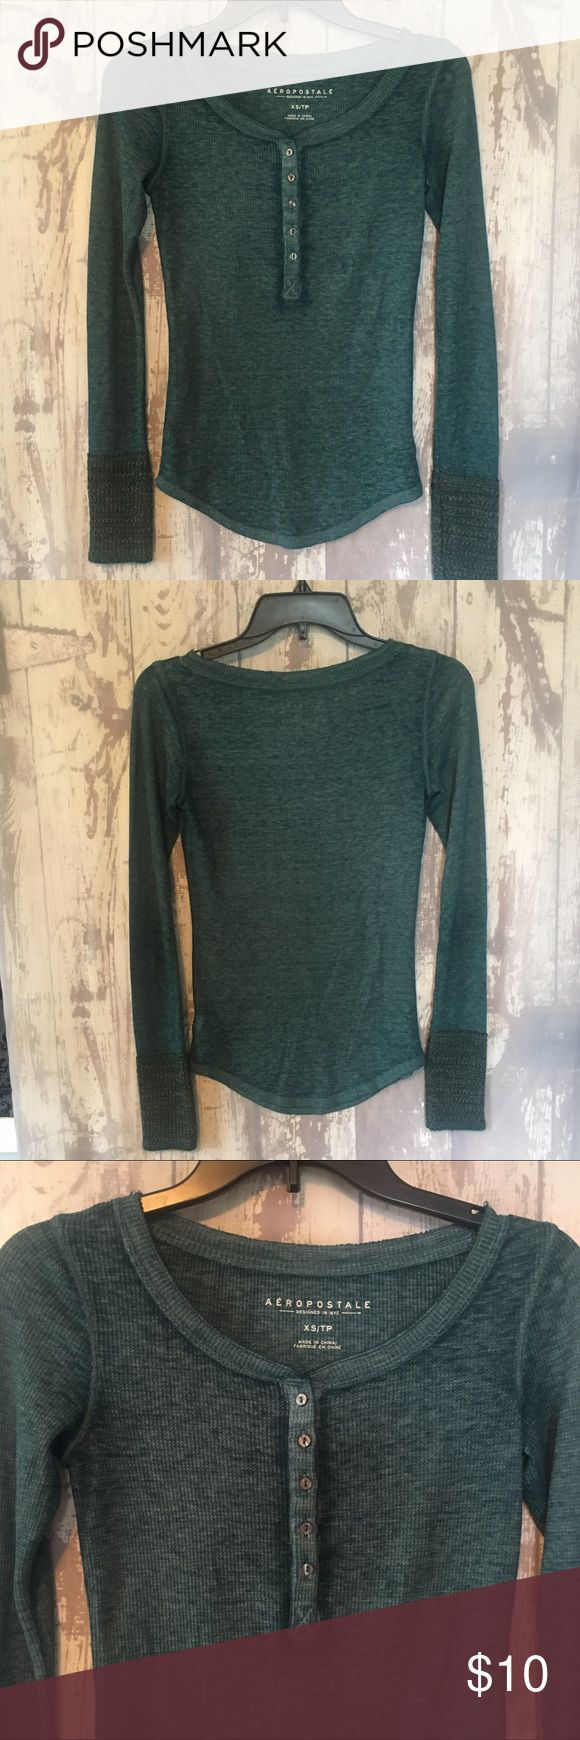 Aeropostale Long Sleeve Henley Top Aeropostale long sleeve Henley style top with sweater-Knit cuff. Excellent condition. Color: Teal. Size XS. Aeropostale Tops Tees - Long Sleeve